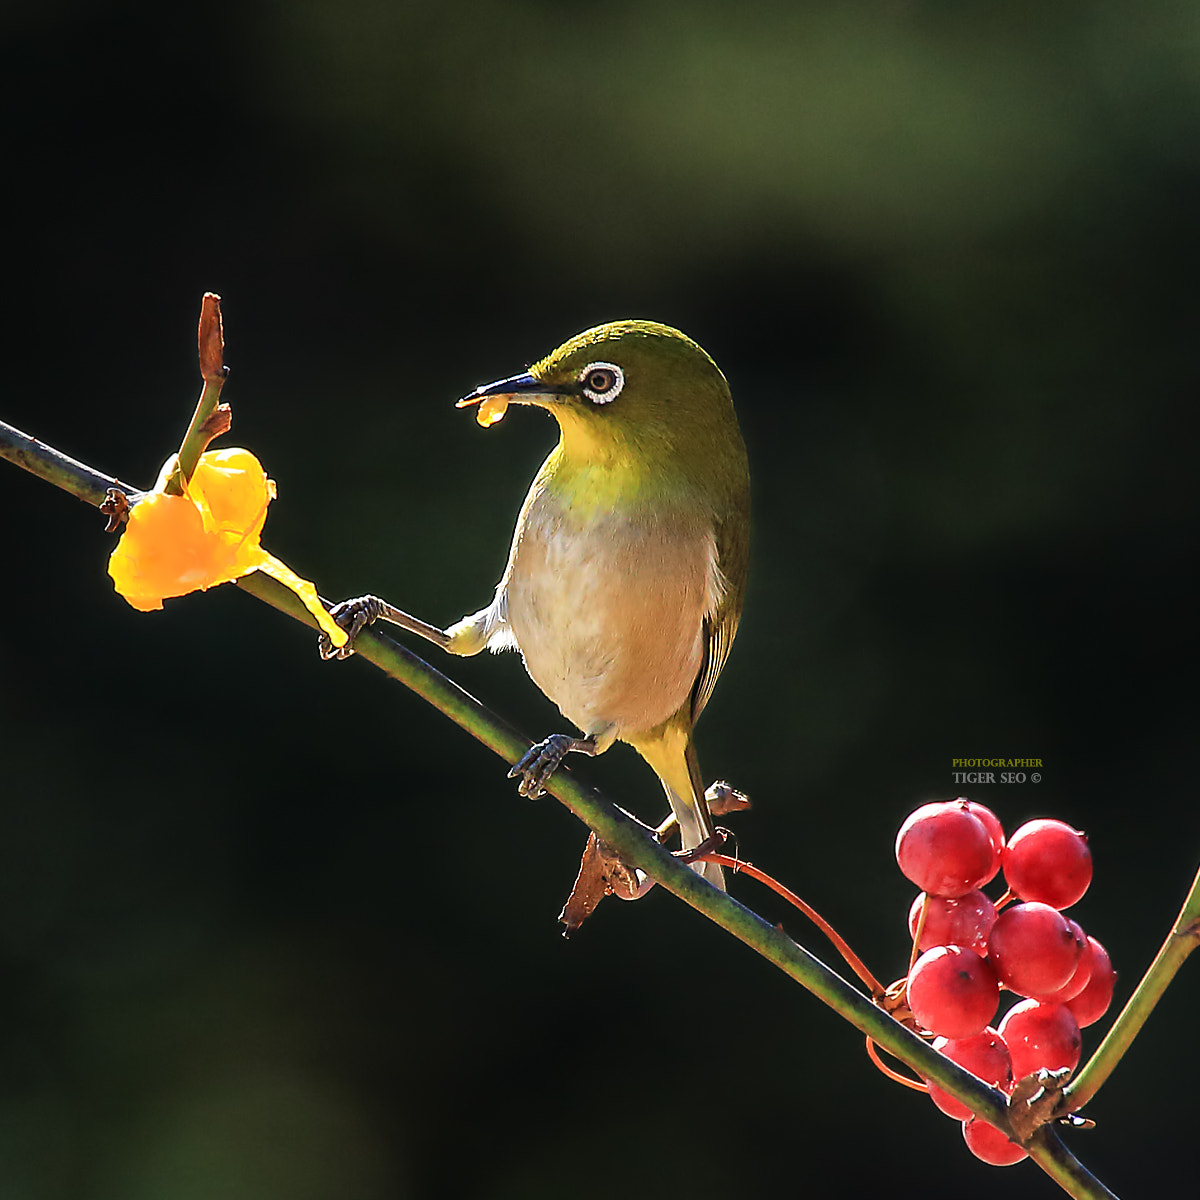 Photograph Japanese white-eye by Tiger Seo on 500px